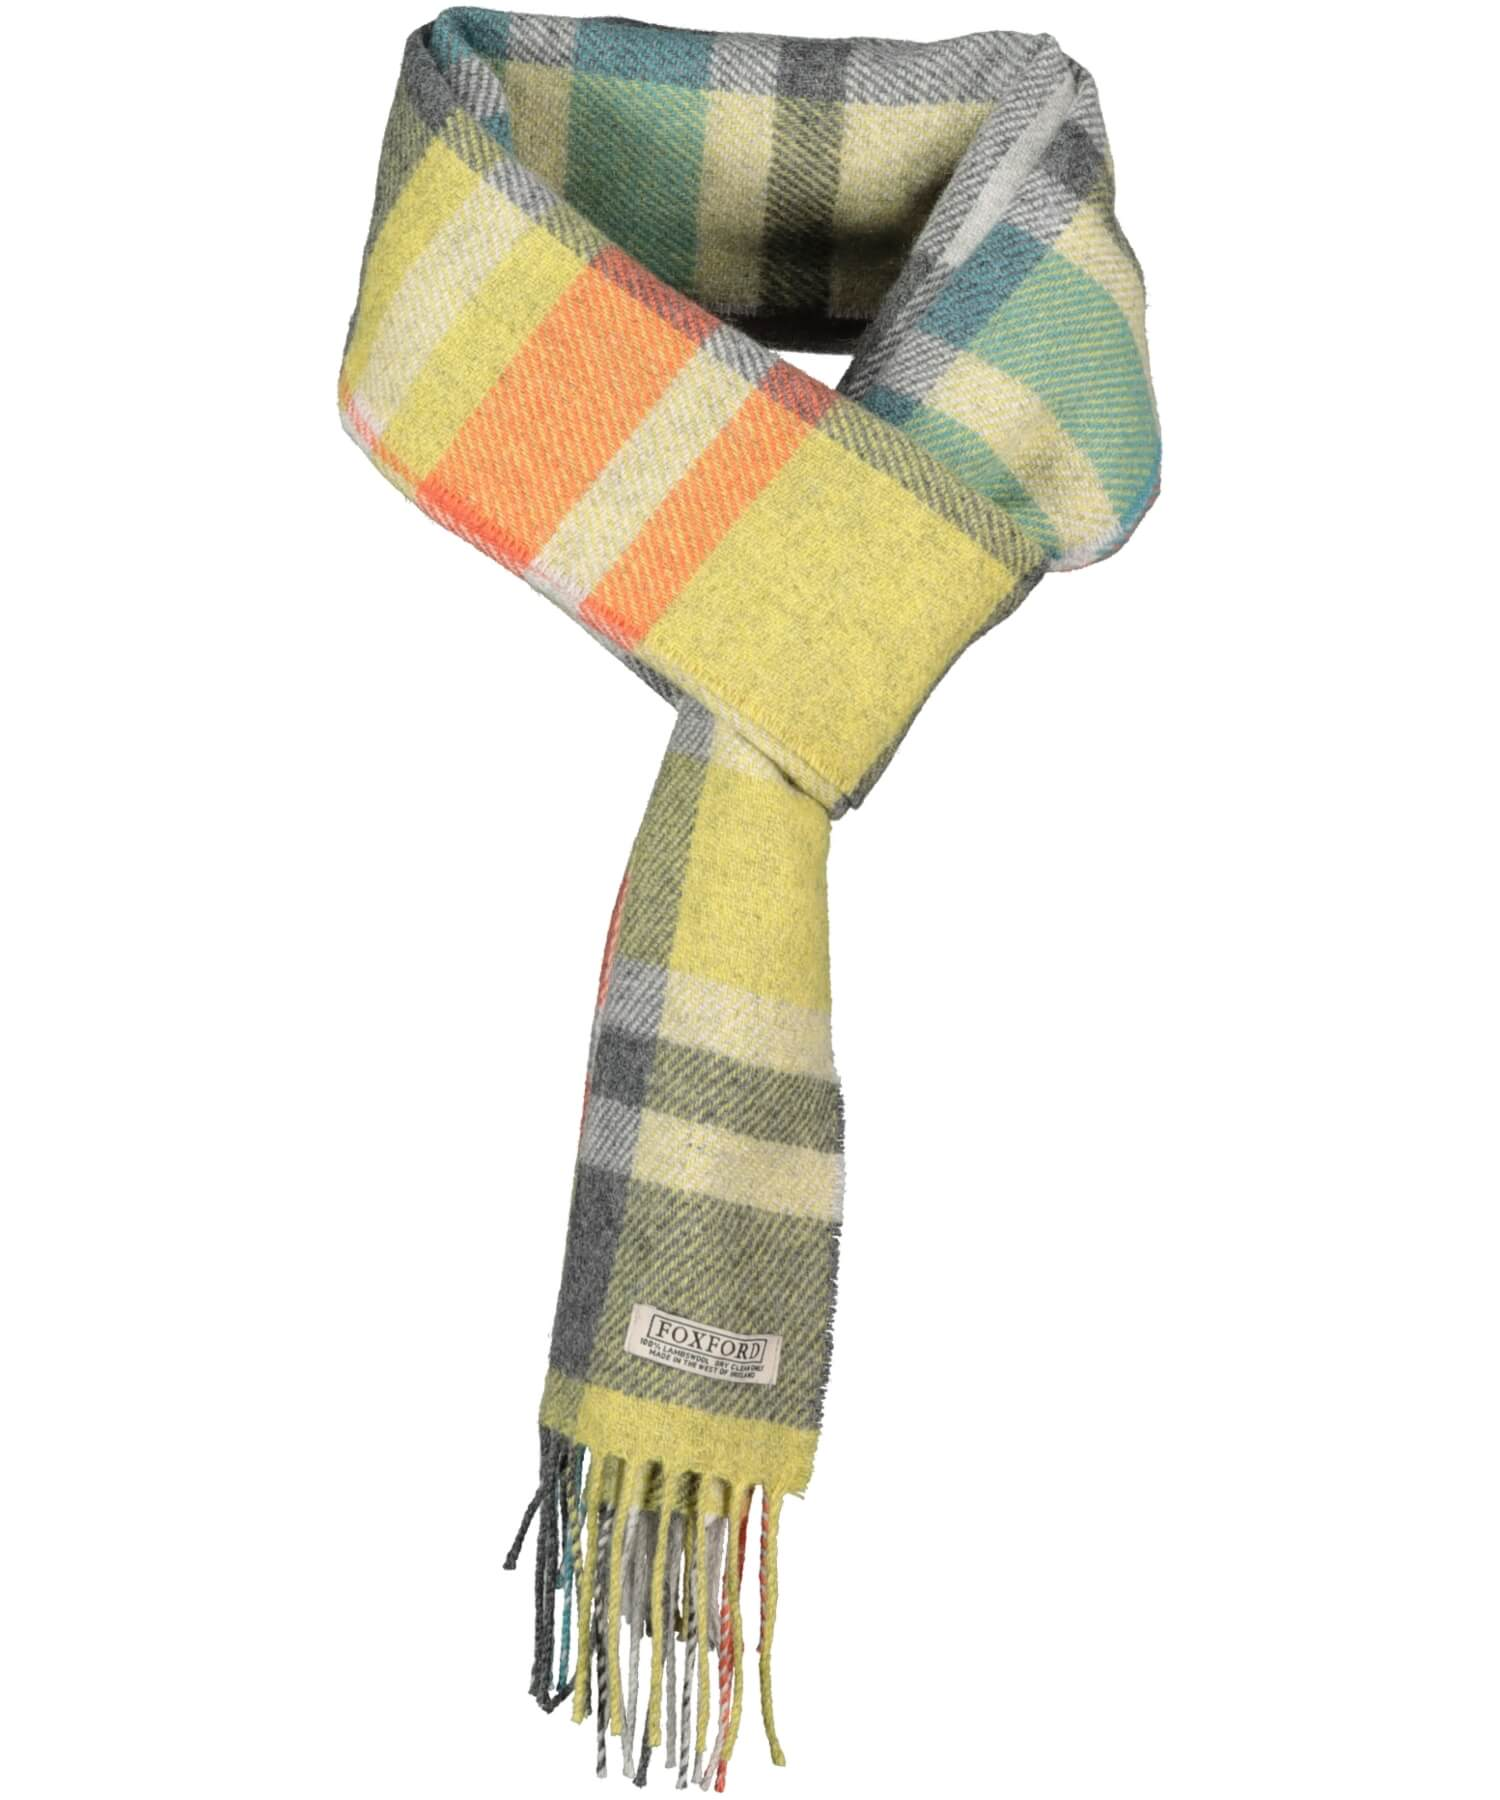 Lambswool Scarf - Sunny Day - [Foxford] - Unisex Scarves - Irish Gifts